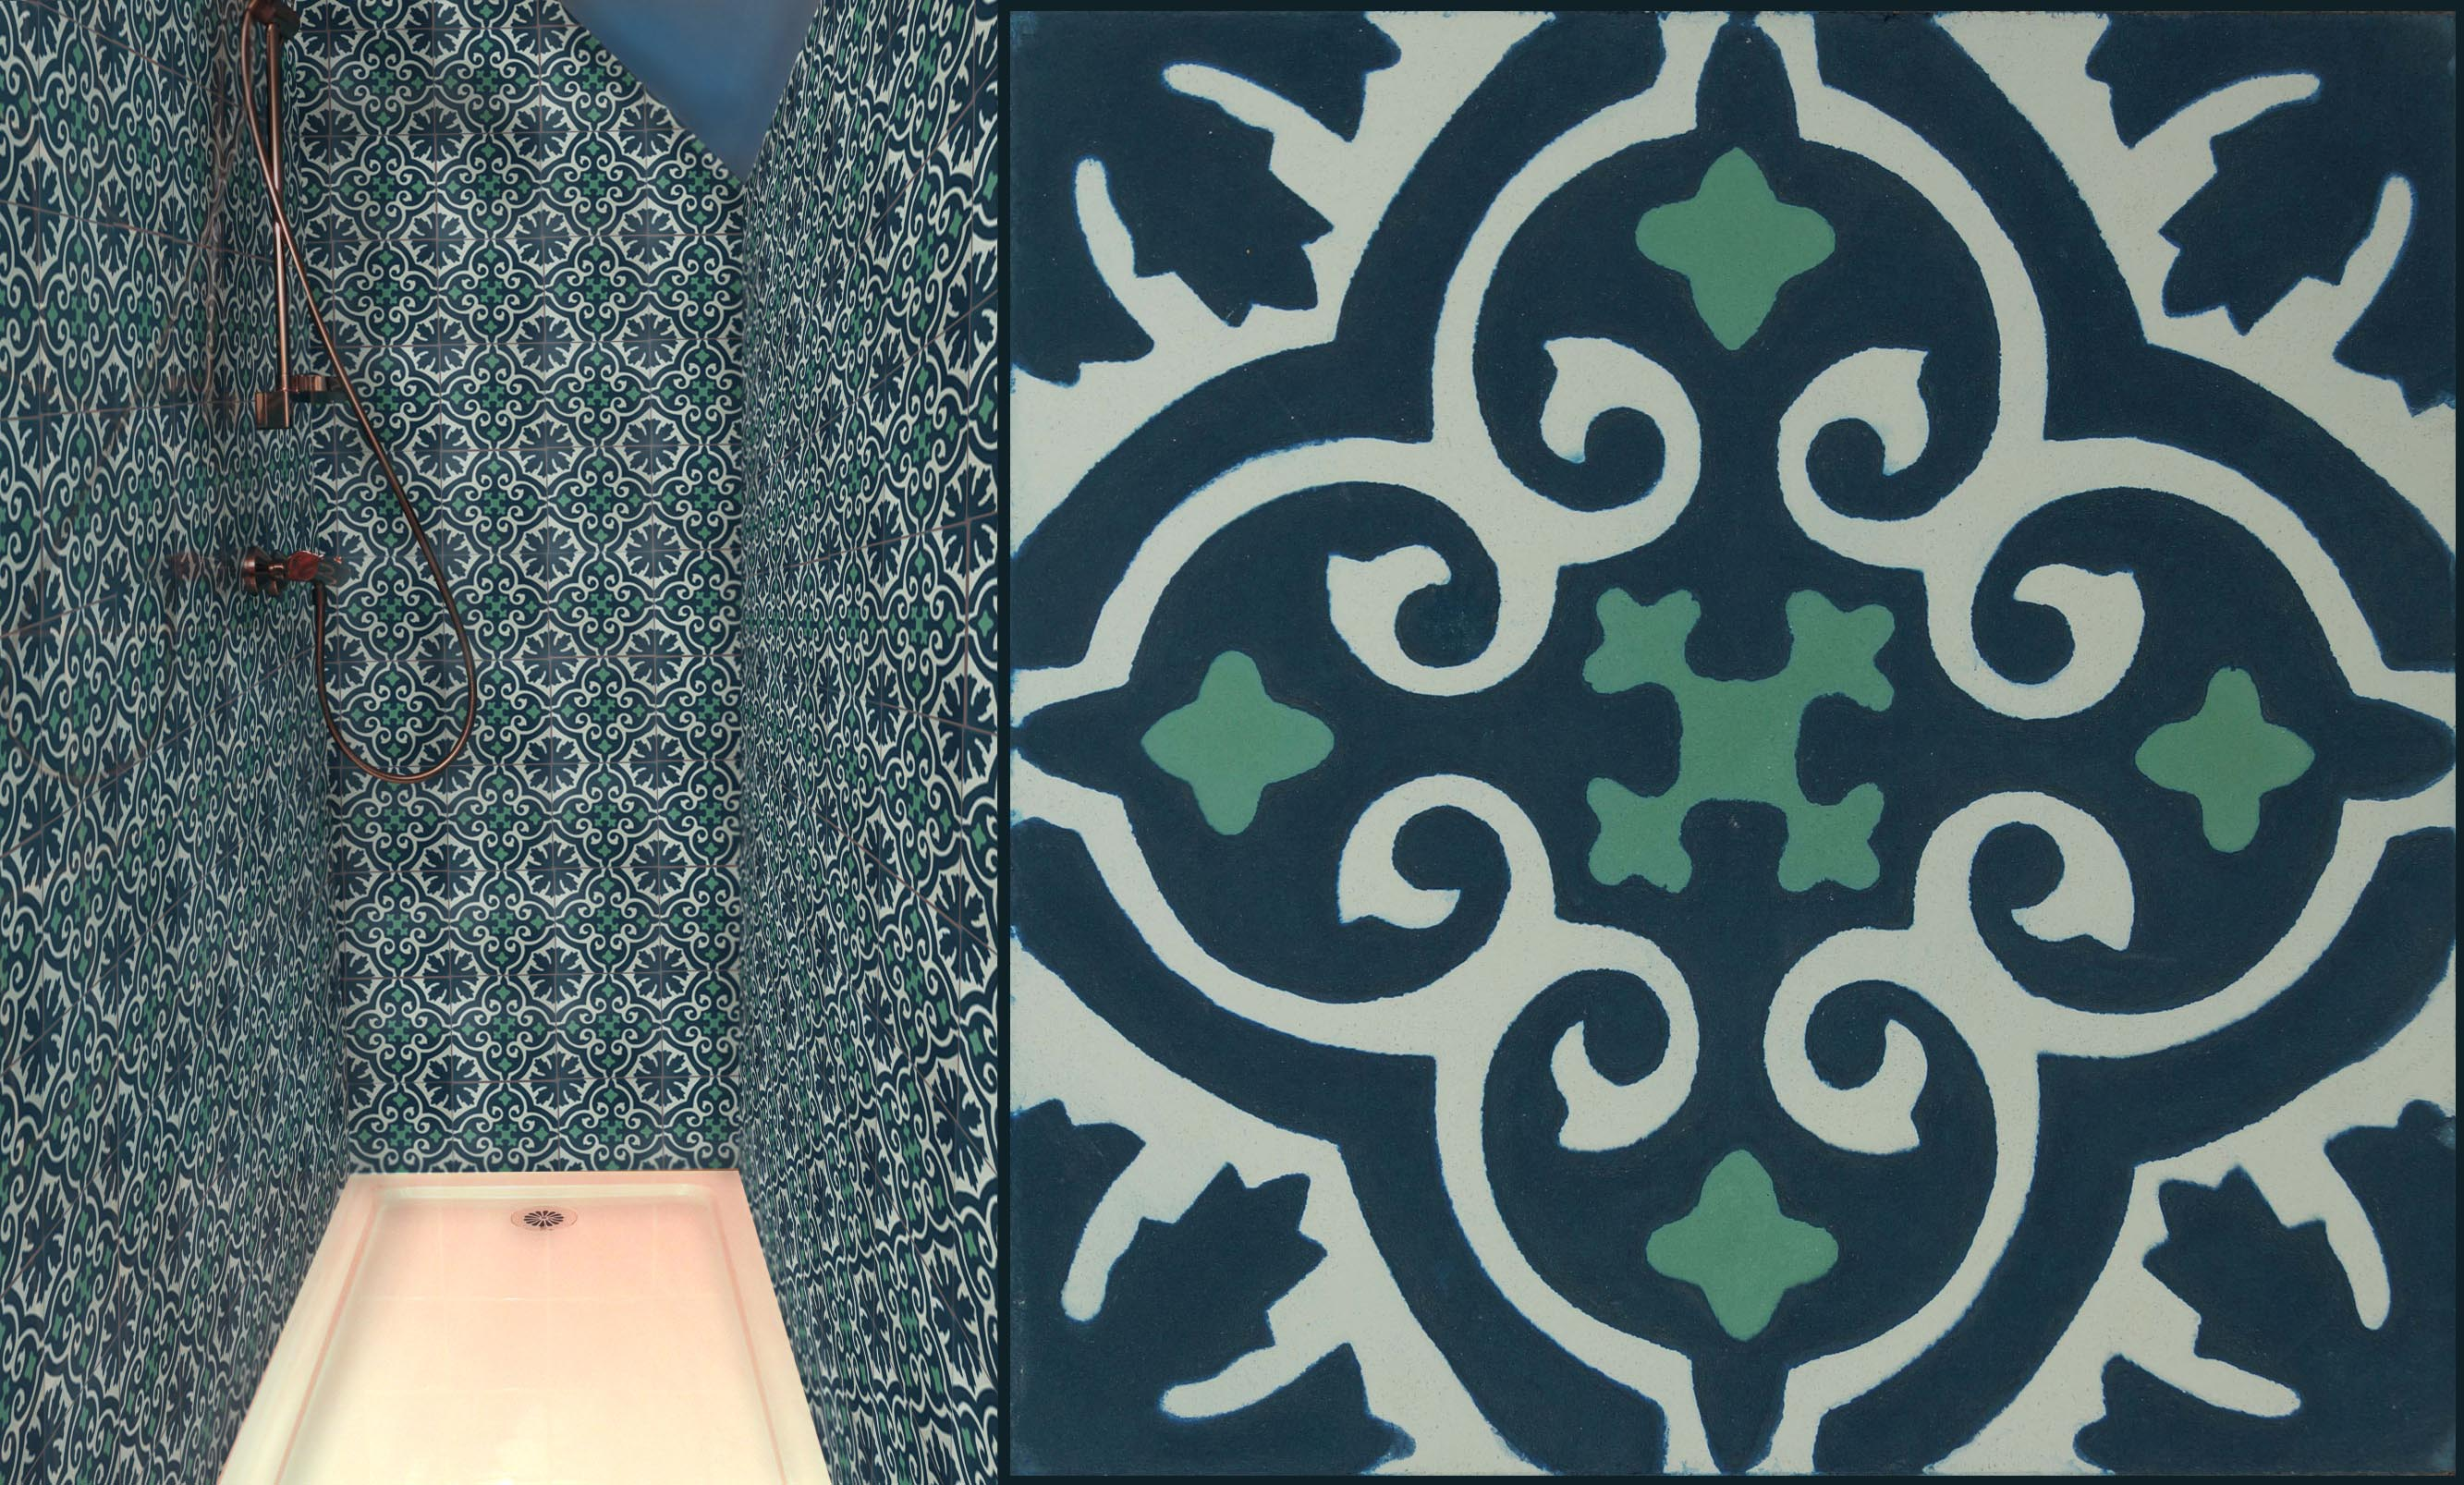 carreaux de ciments dessins motifs colorisation sur mesure ic ne bleu vert collection. Black Bedroom Furniture Sets. Home Design Ideas